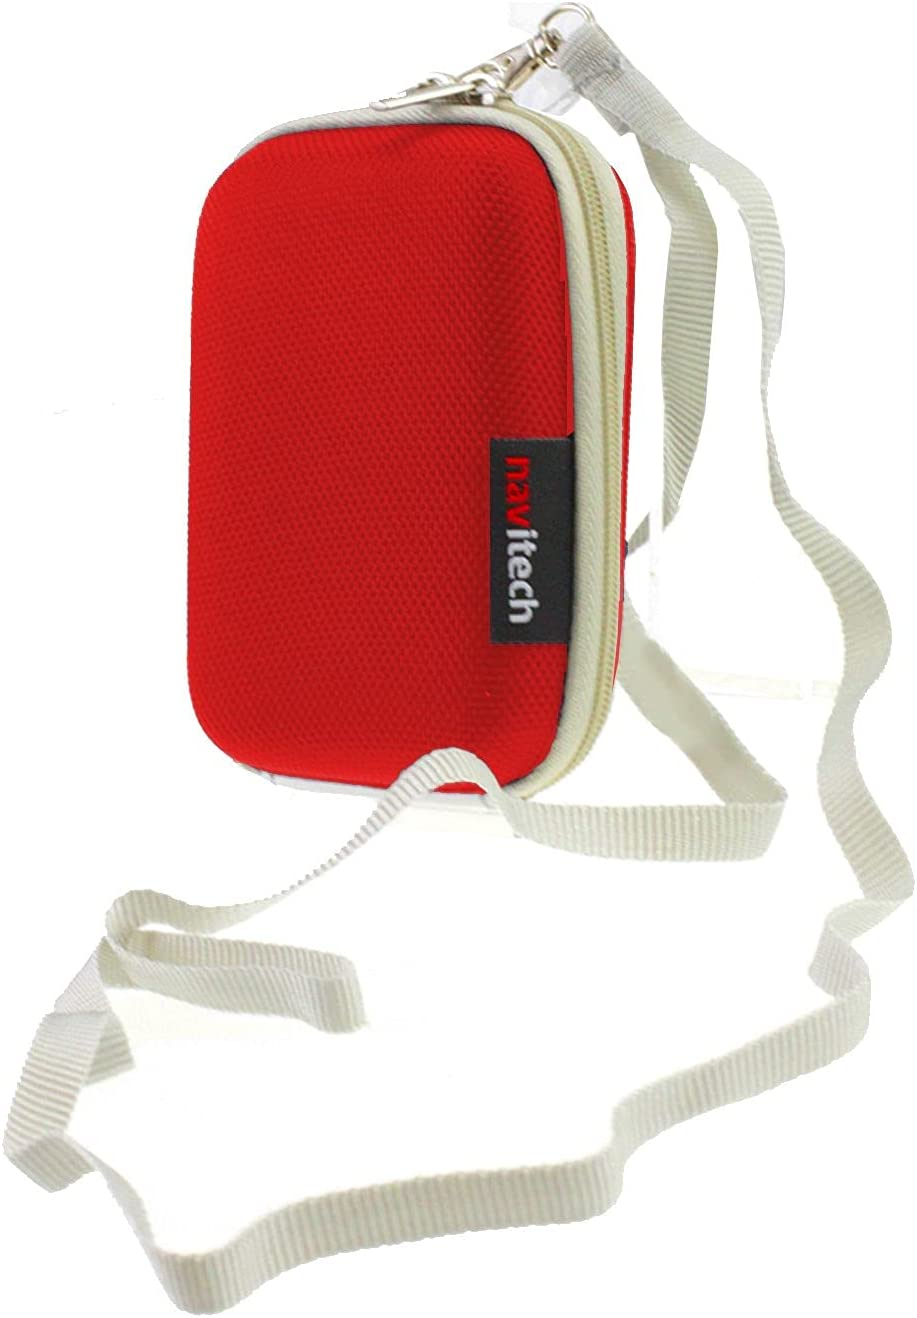 Navitech Red low-pricing 4 years warranty Hard Carry Case The TS100 Compatible AlcoMate with